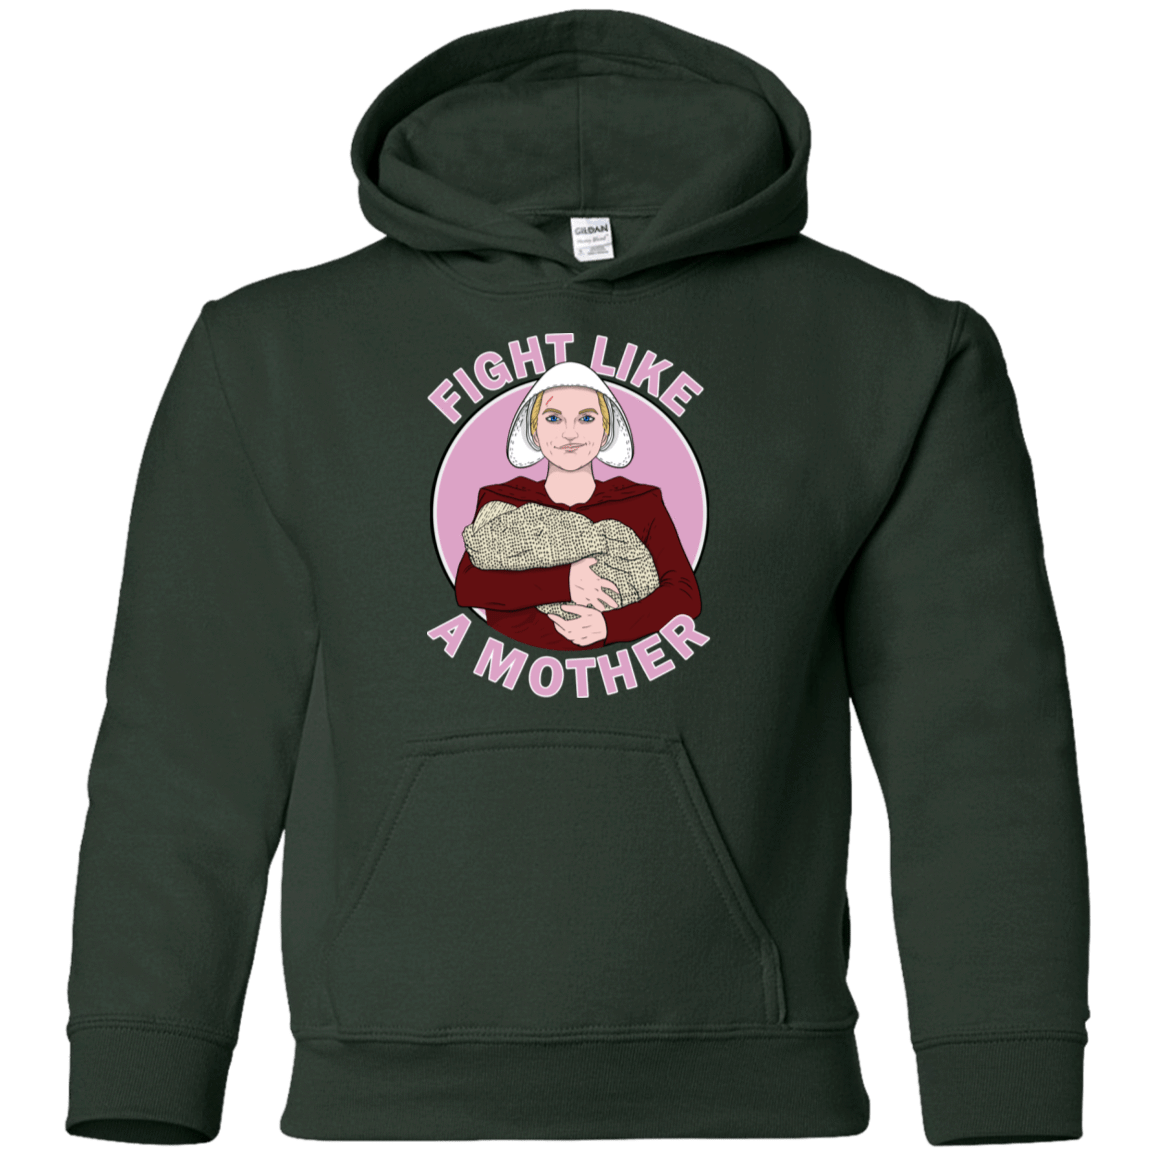 Sweatshirts Forest Green / YS Fight Like a Mother Youth Hoodie